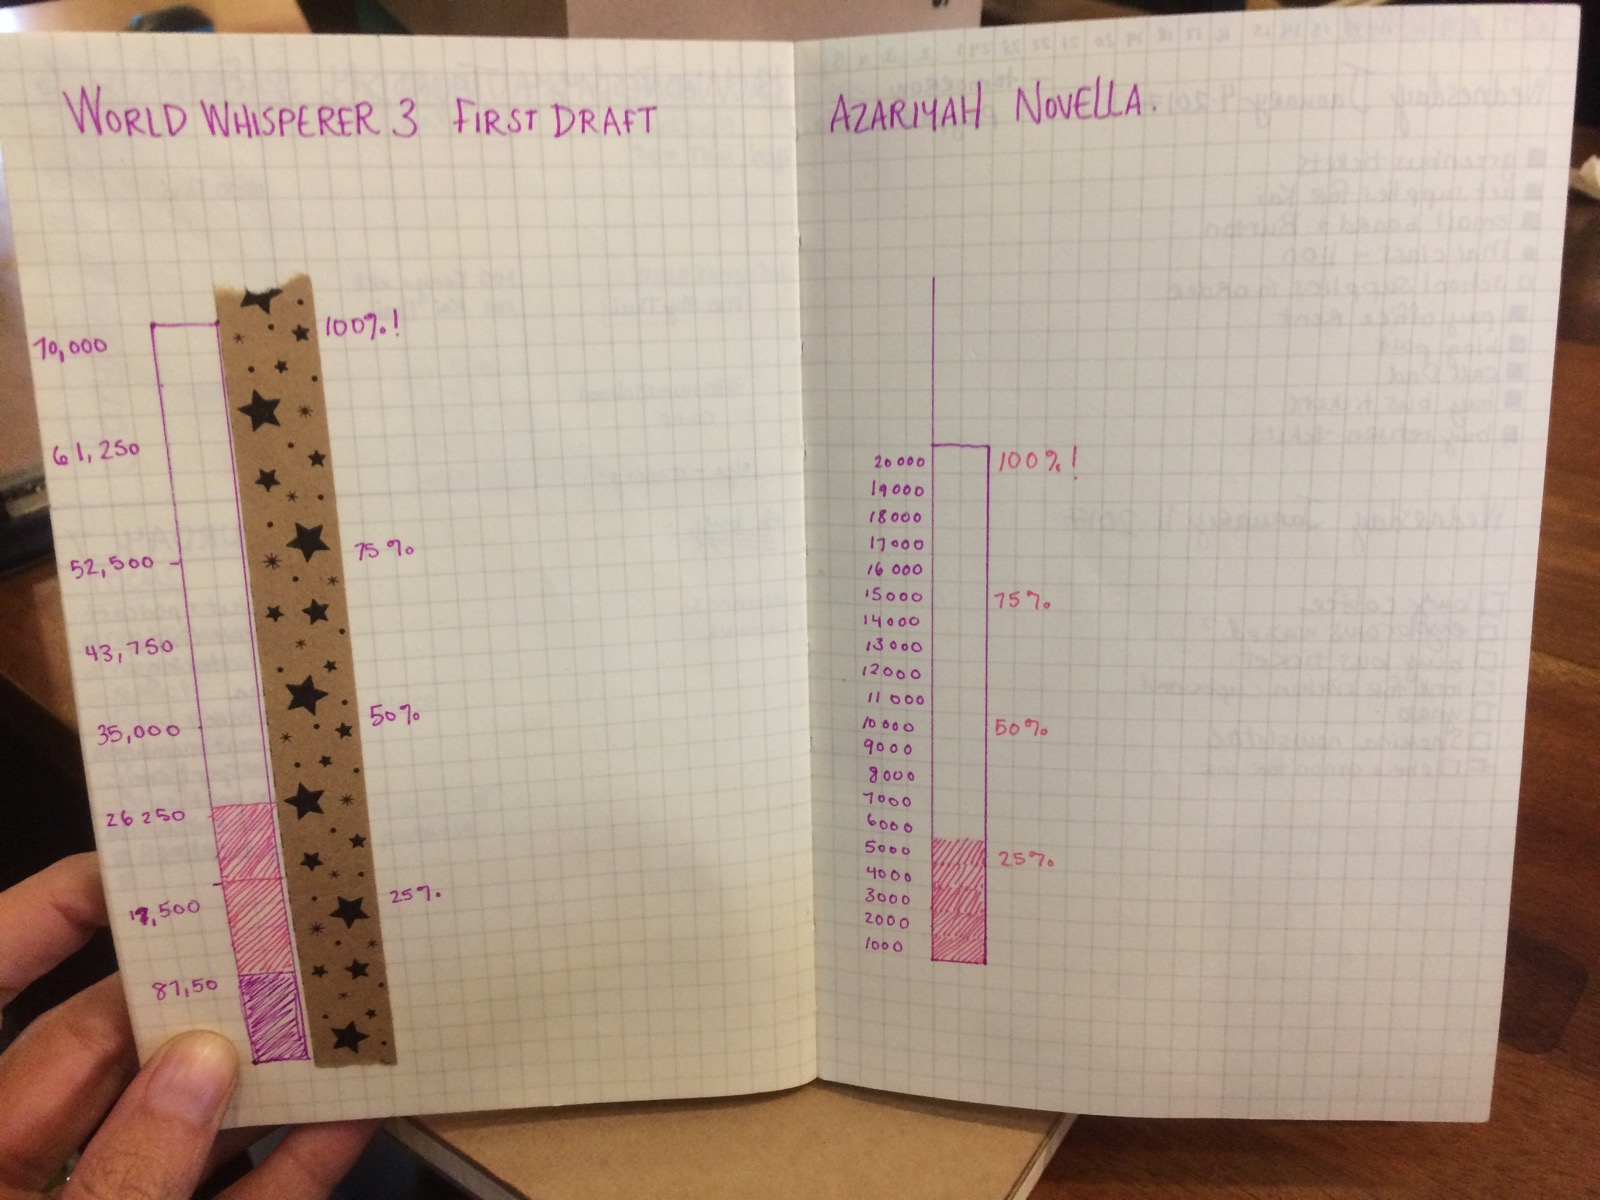 Yes, those are odd increments. I got confused! I'm not a graph maker!